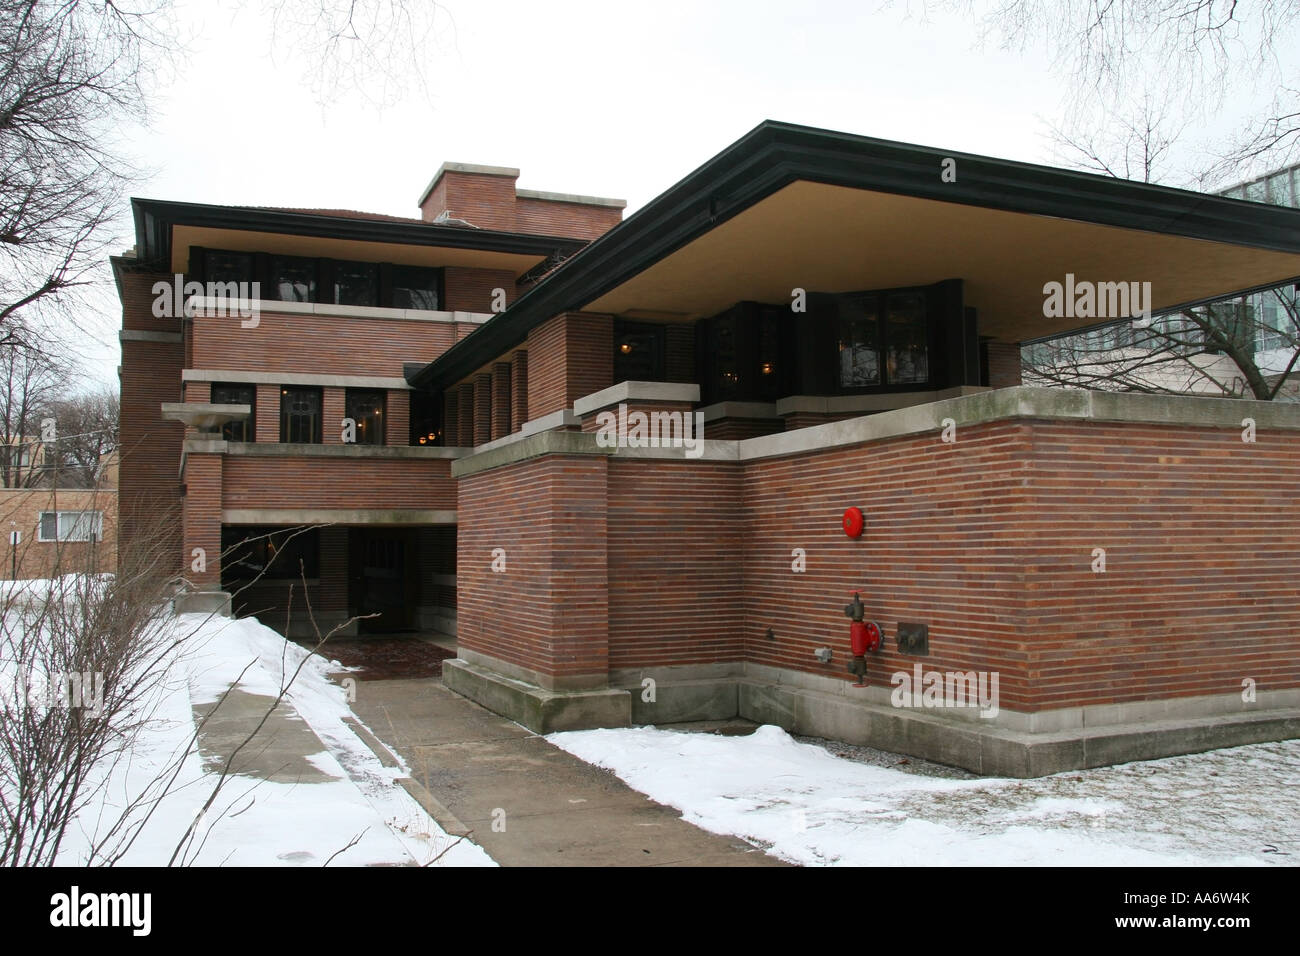 Frederick c robie house view of porch area and overhang the front frederick c robie house view of porch area and overhang the front door is down in recessed area at lower left rubansaba